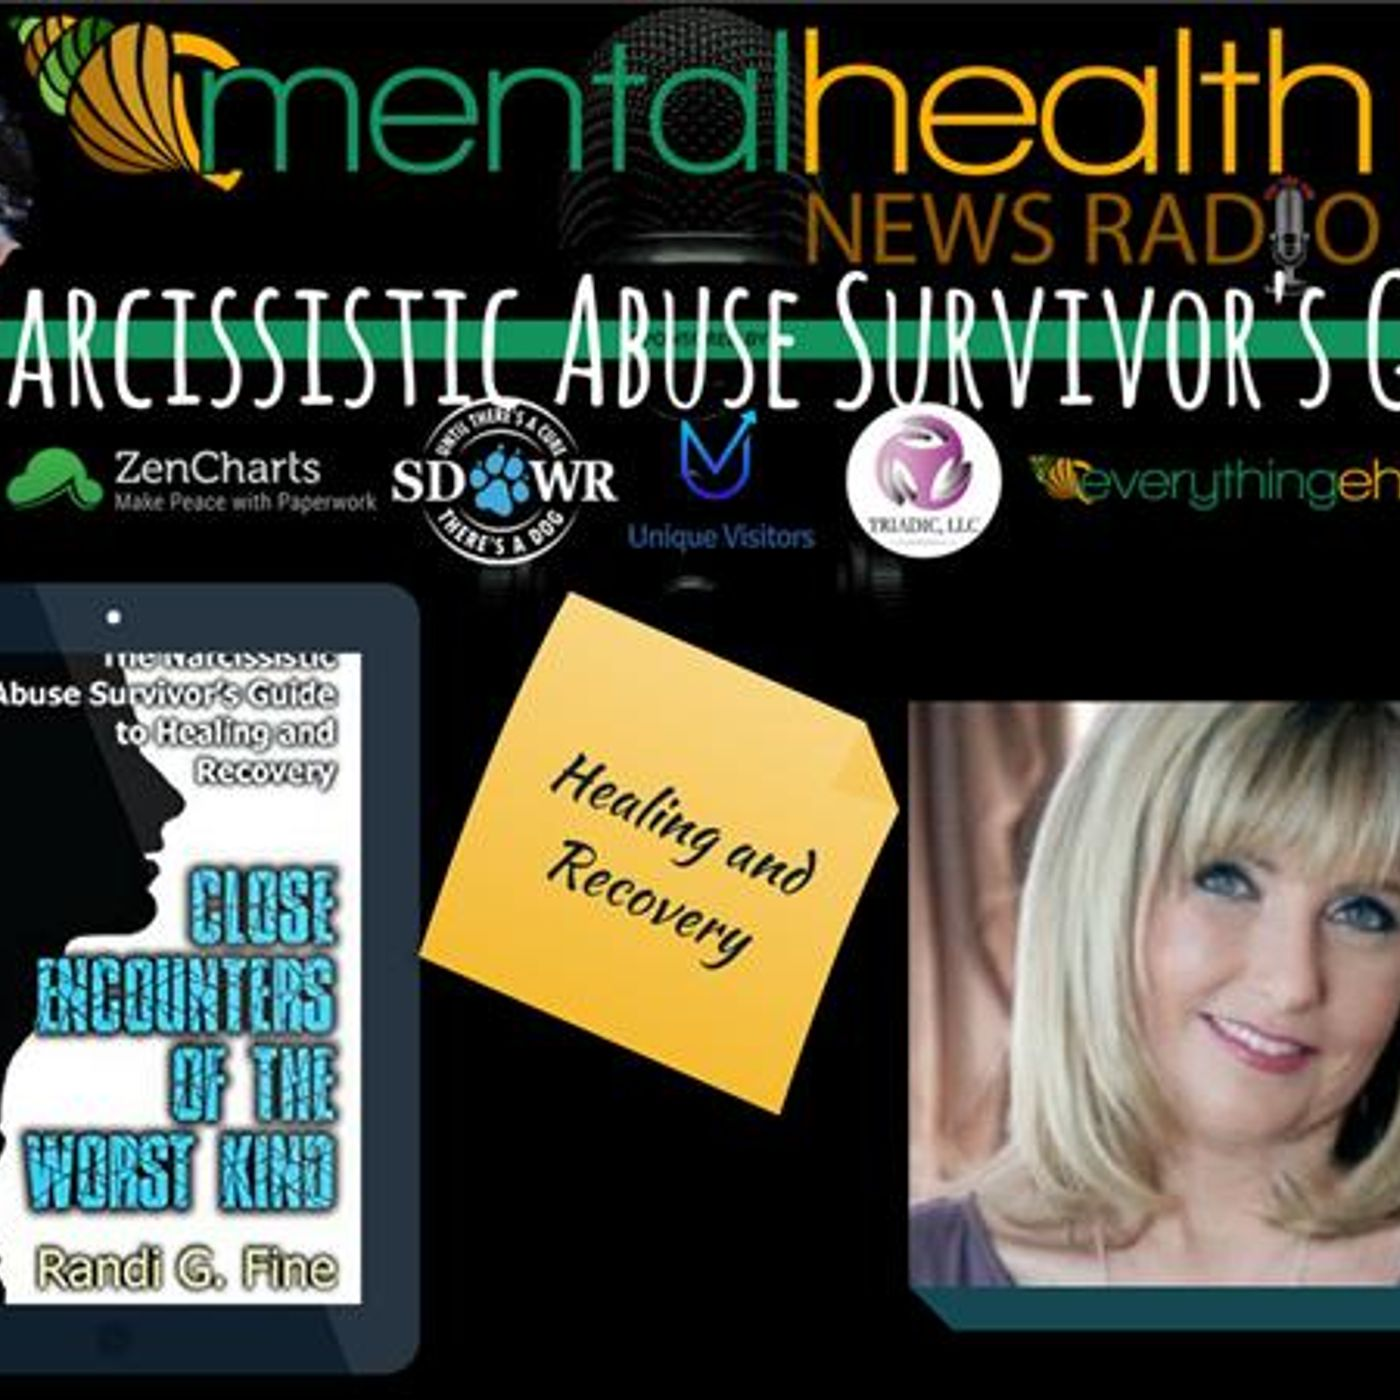 Mental Health News Radio - The Narcissistic Abuse Survivor's Guide to Healing and Recovery: Randi G. Fine